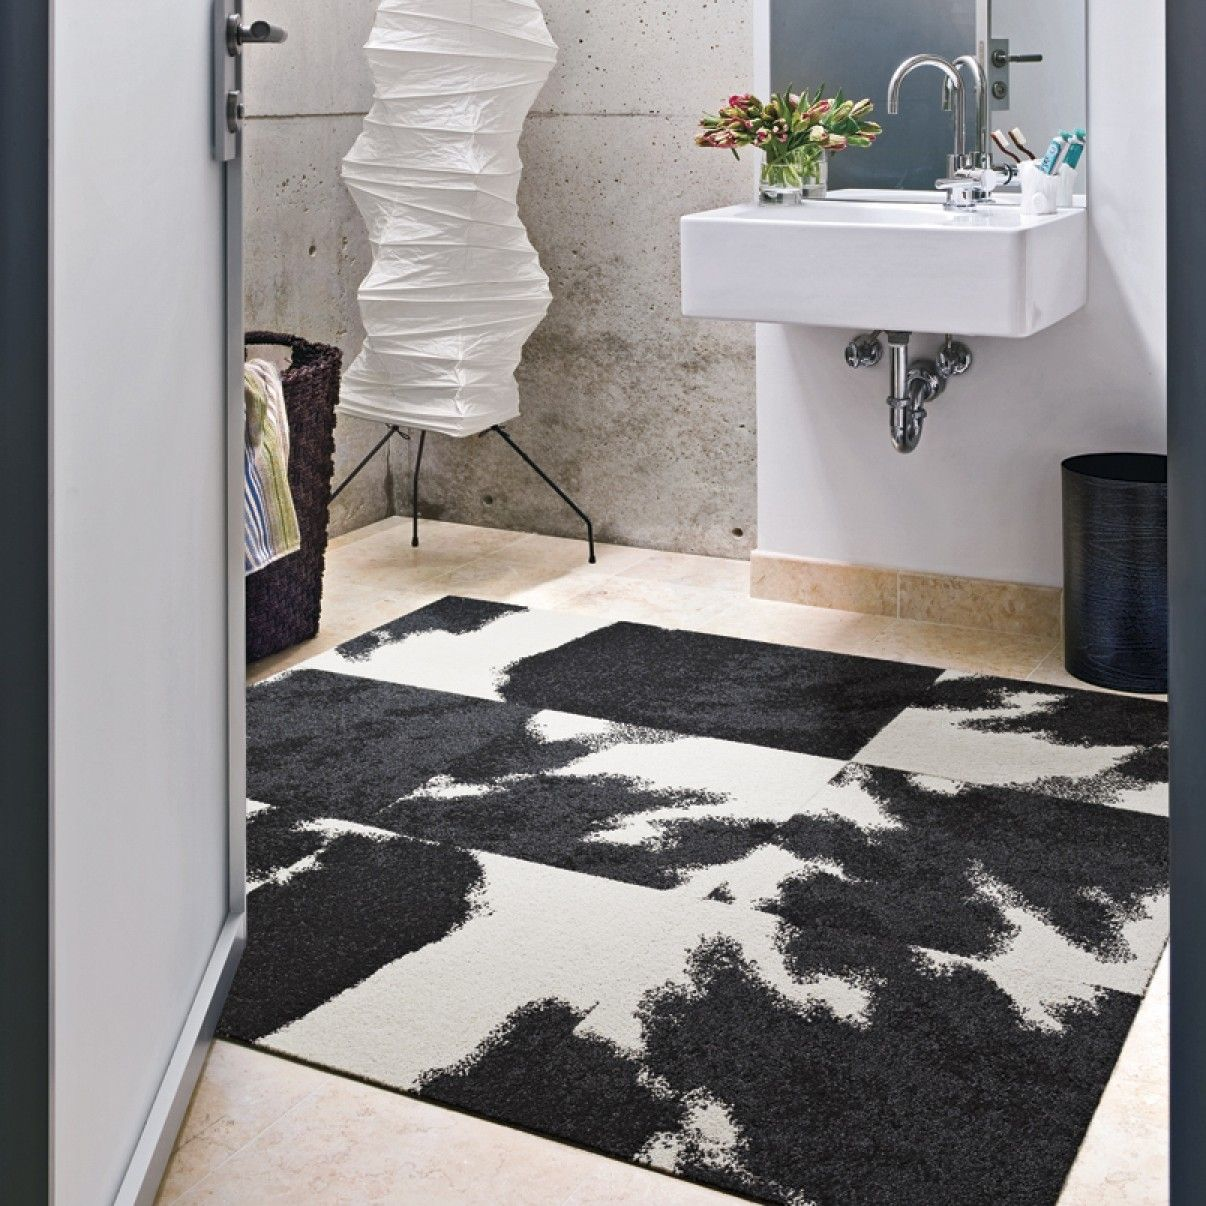 Cow rug tiles from flor a hide rug i can get behind i eat cow rug tiles from flor a hide rug i can get behind doublecrazyfo Images